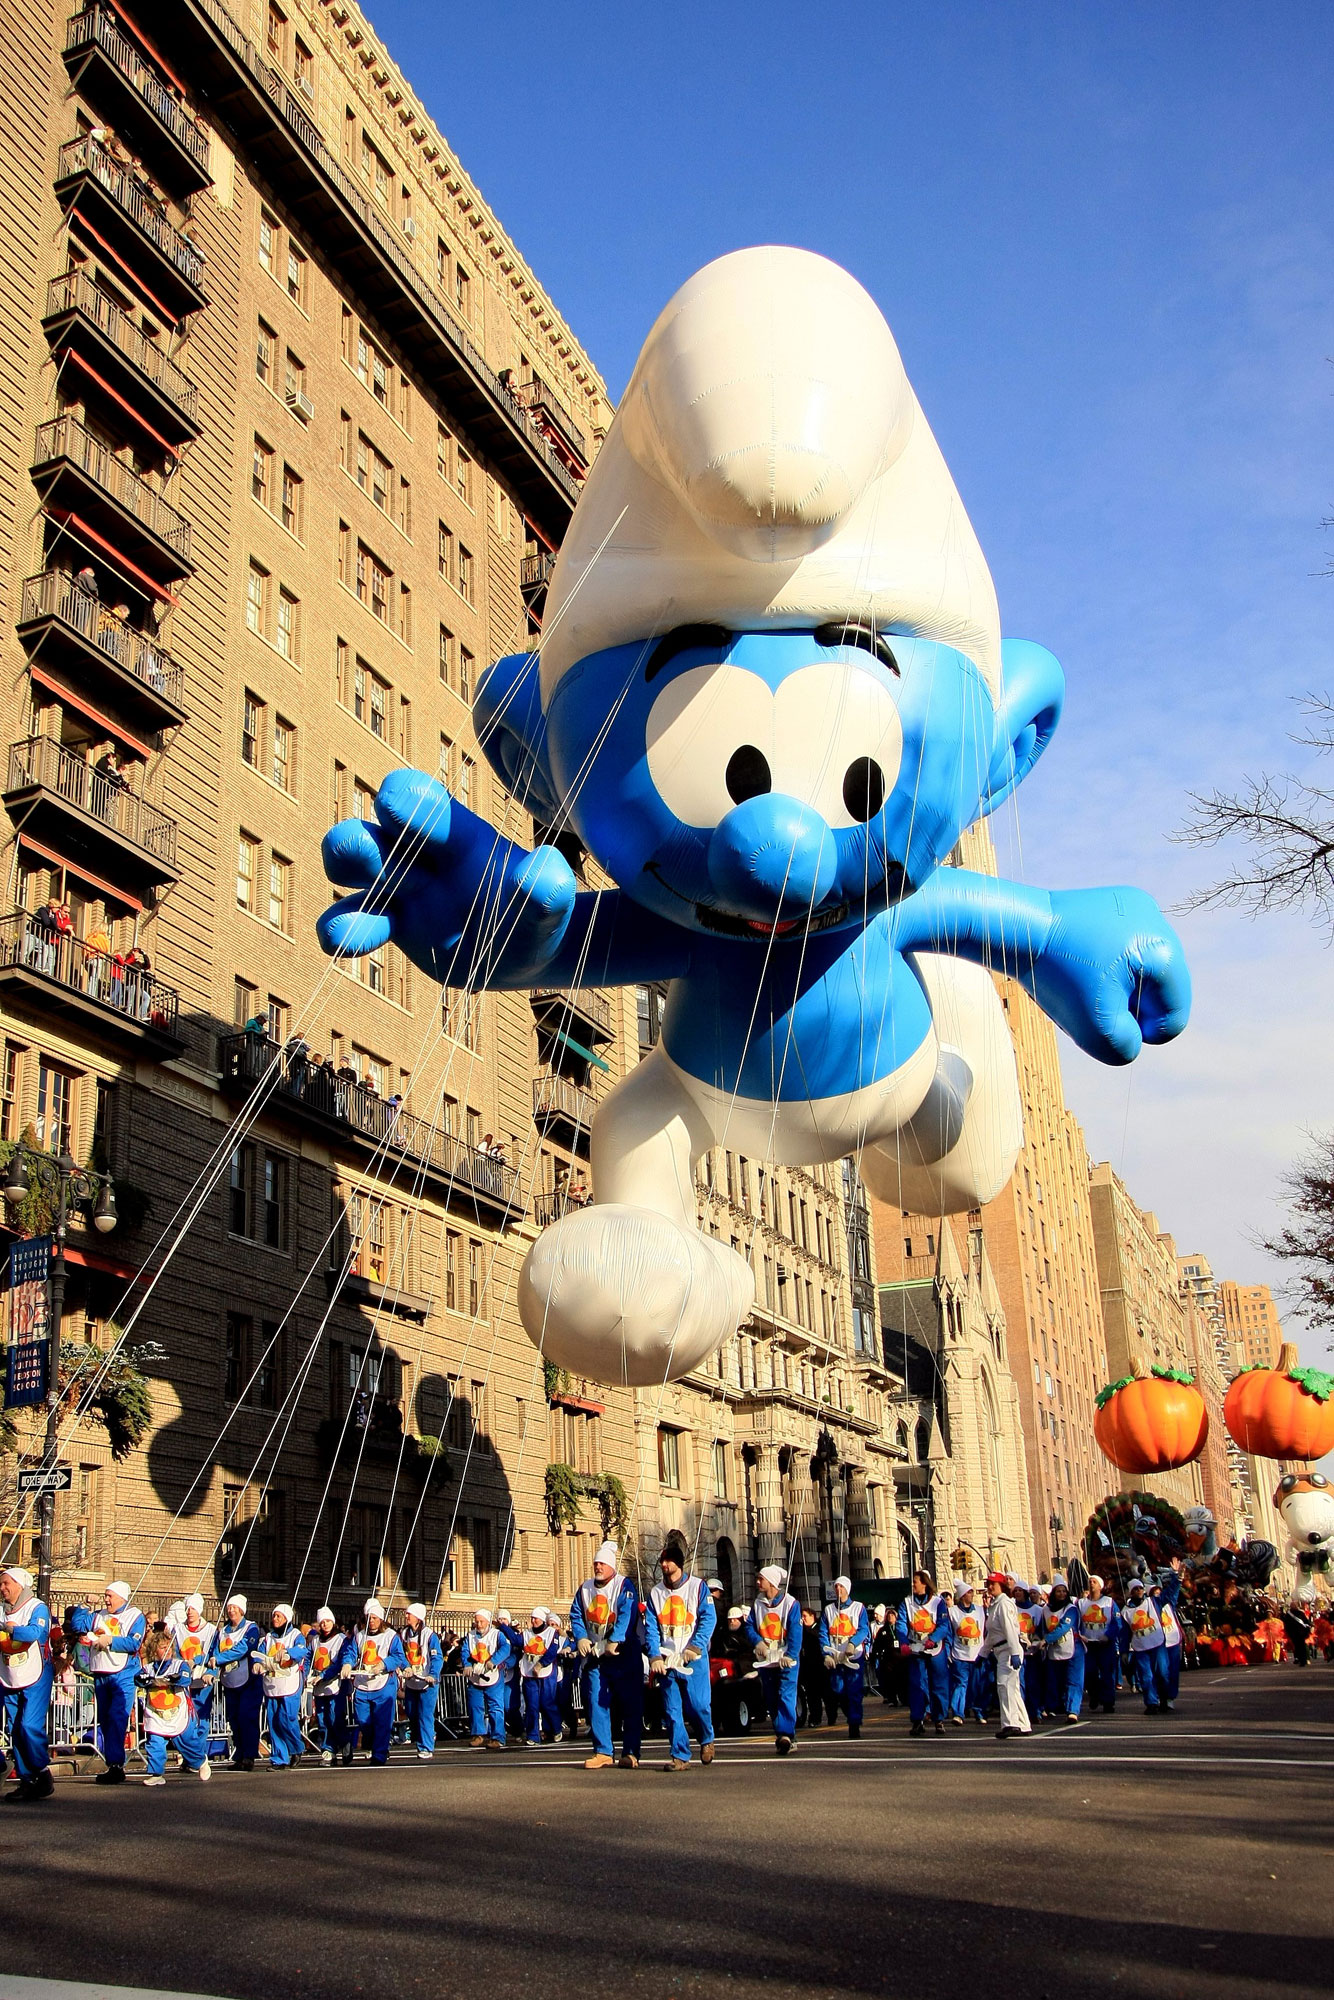 Macy S 10th Birthday Party At Dylan S Candy Bar: Smurf-in-macys-thanksgiving-day-parade.jpg